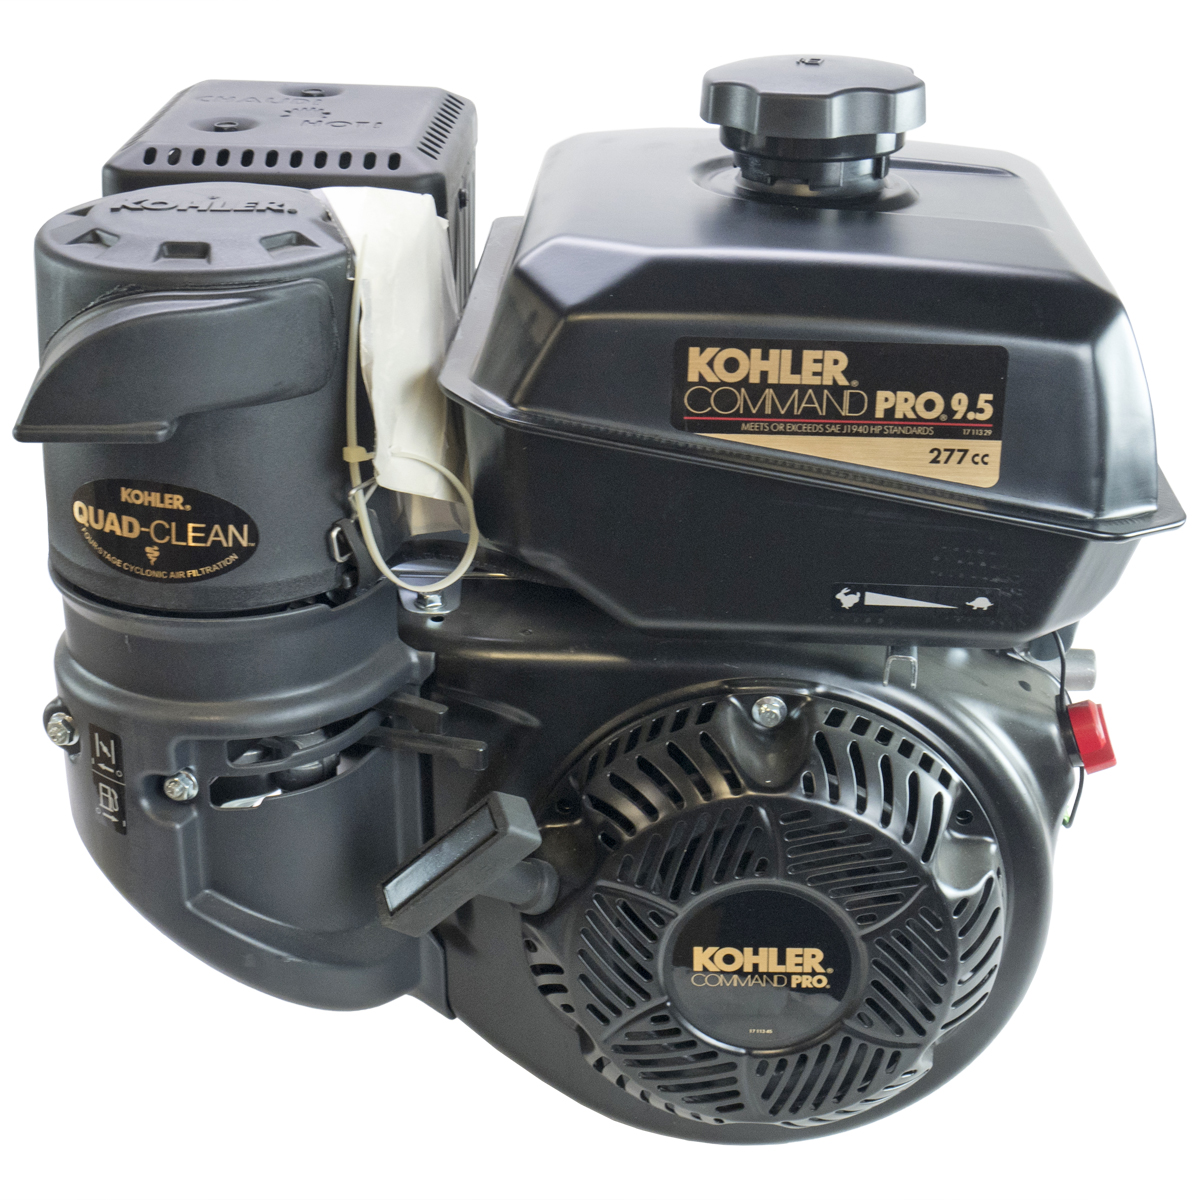 9.5HP Command Pro, 2:1 Wet Clutch Gear Reduction Horizontal 25mm Shaft, Recoil Start, OHV, CIS, Cyclonic Air Kohler Engine